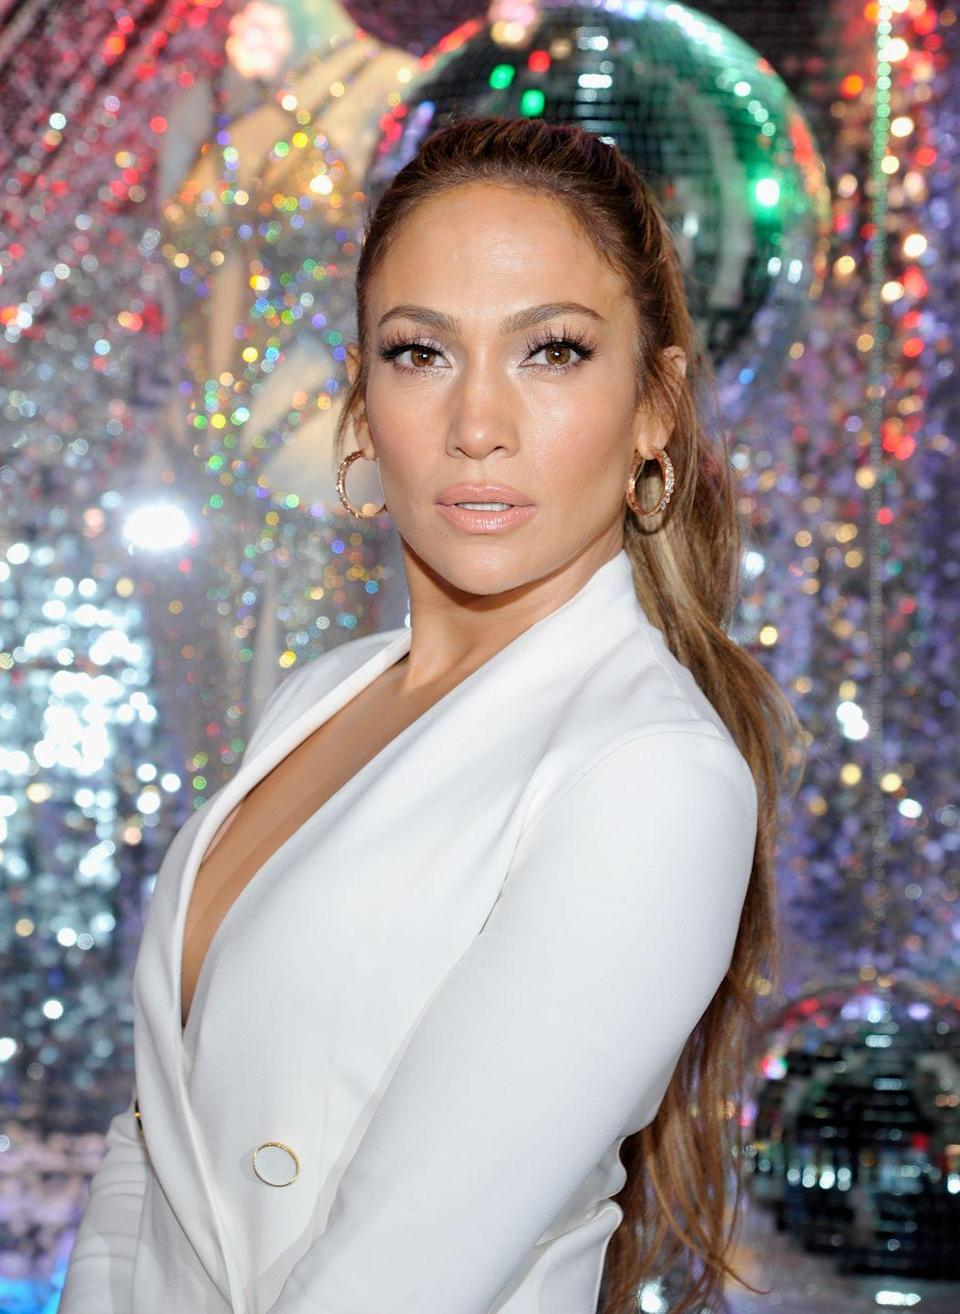 """<p>J.Lo is known for going against the grain, which seems to extend to her coffee habits as well. The singer reportedly prefers to have her drink stirred <a href=""""https://961thebreeze.com/celebrity-demands-stir-my-coffee/"""" rel=""""nofollow noopener"""" target=""""_blank"""" data-ylk=""""slk:counterclockwise"""" class=""""link rapid-noclick-resp"""">counterclockwise</a>. </p>"""